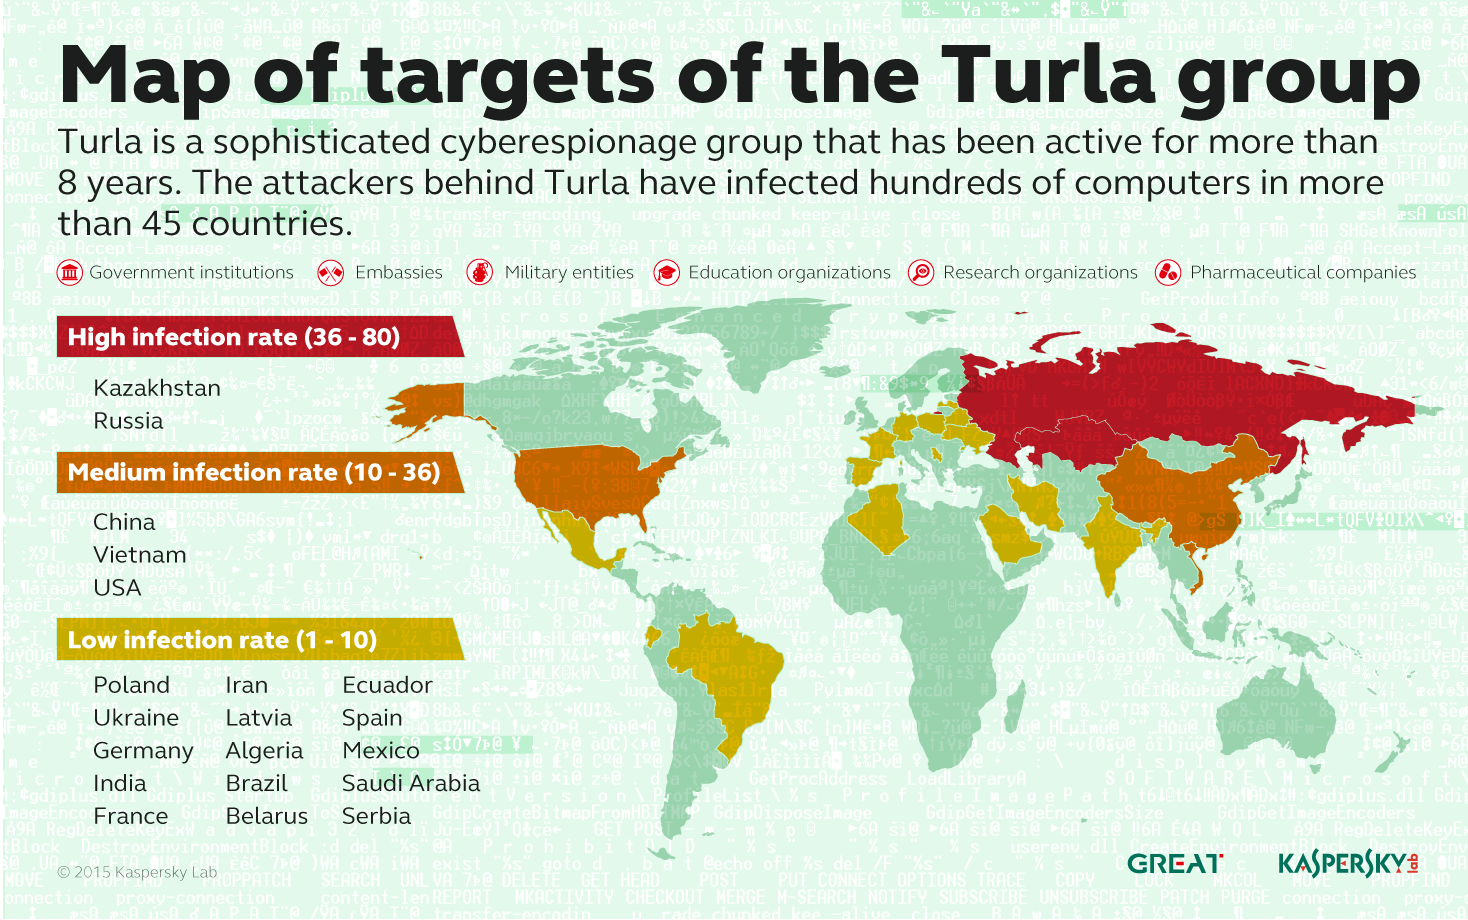 Turla_Map_of_Targets1